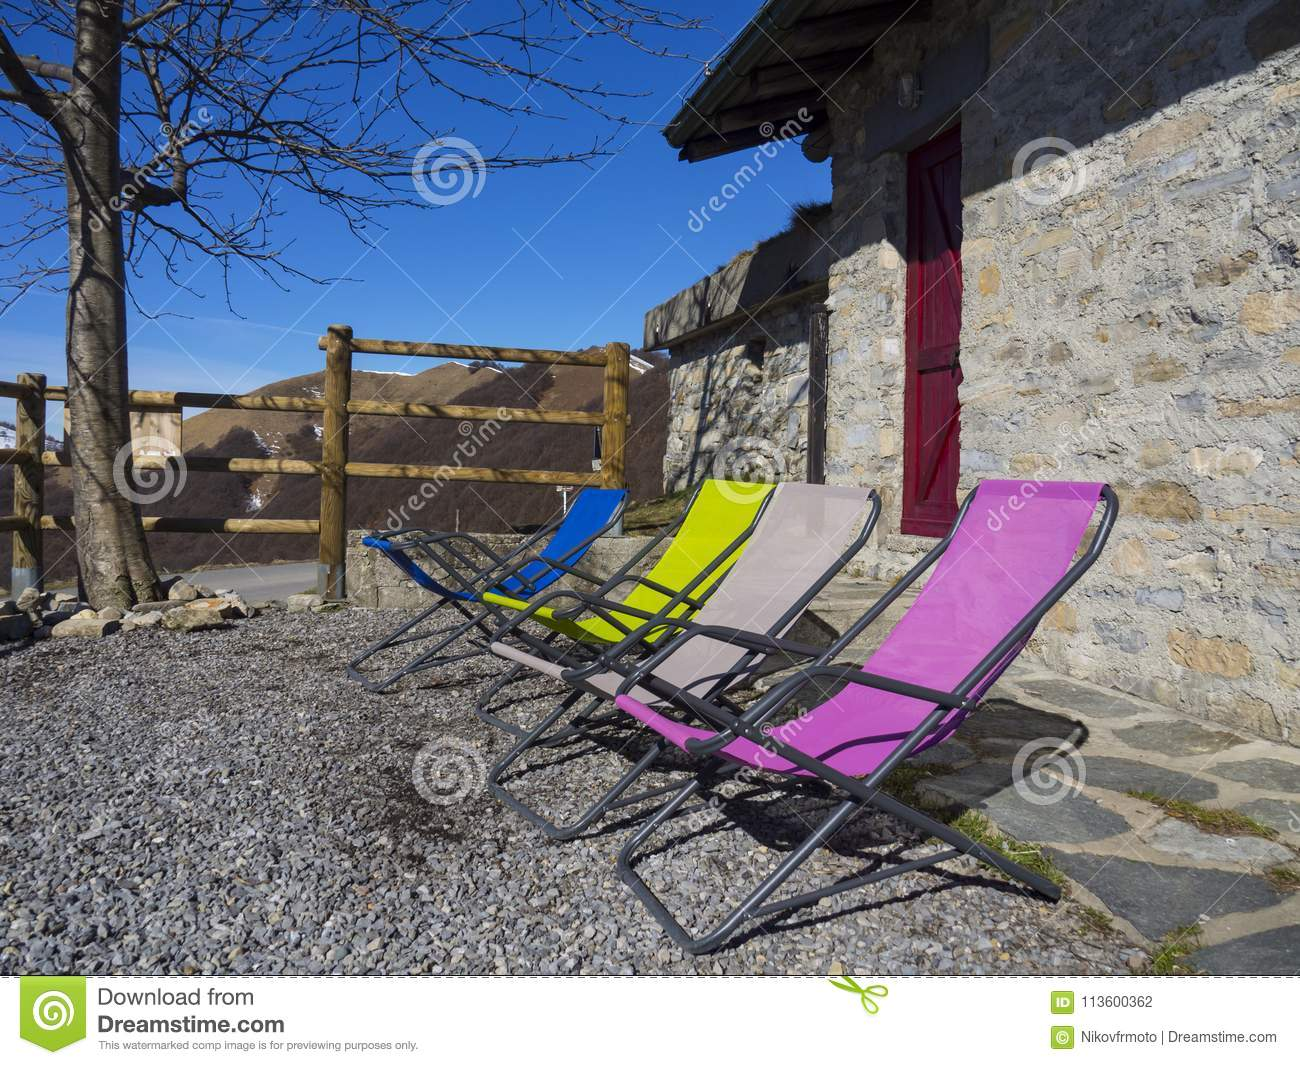 Download Colored Deck Chairs In The Alps Stock Photo   Image Of Color,  Equipment: